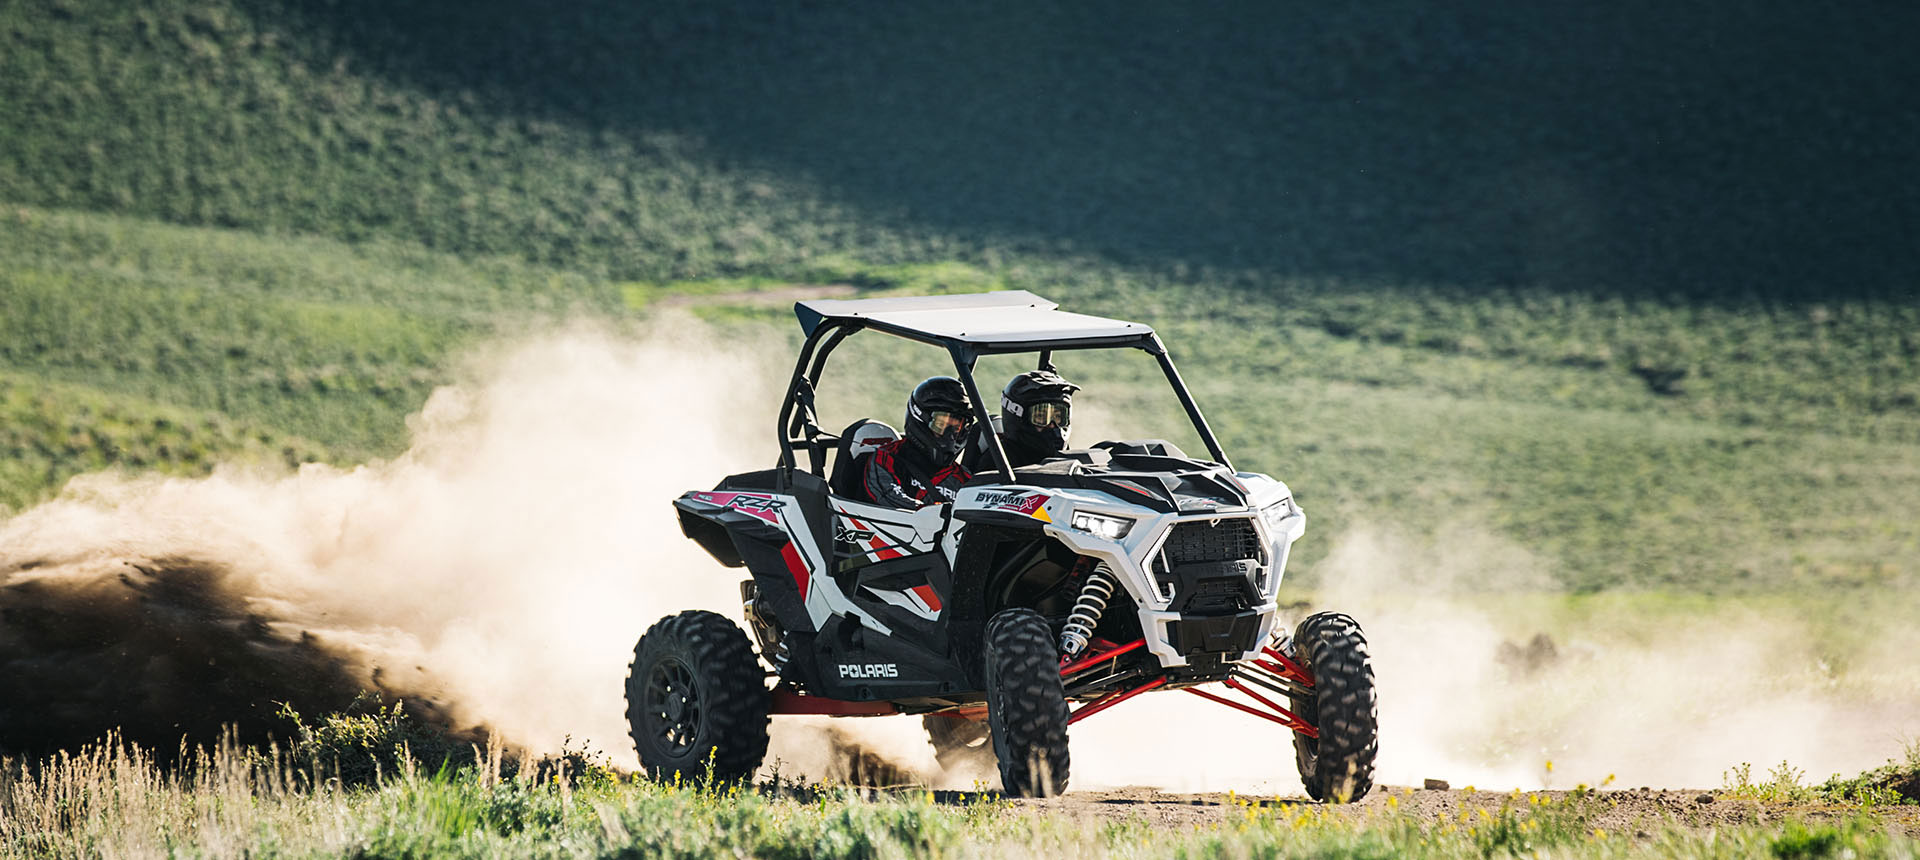 2019 Polaris RZR XP 1000 in Asheville, North Carolina